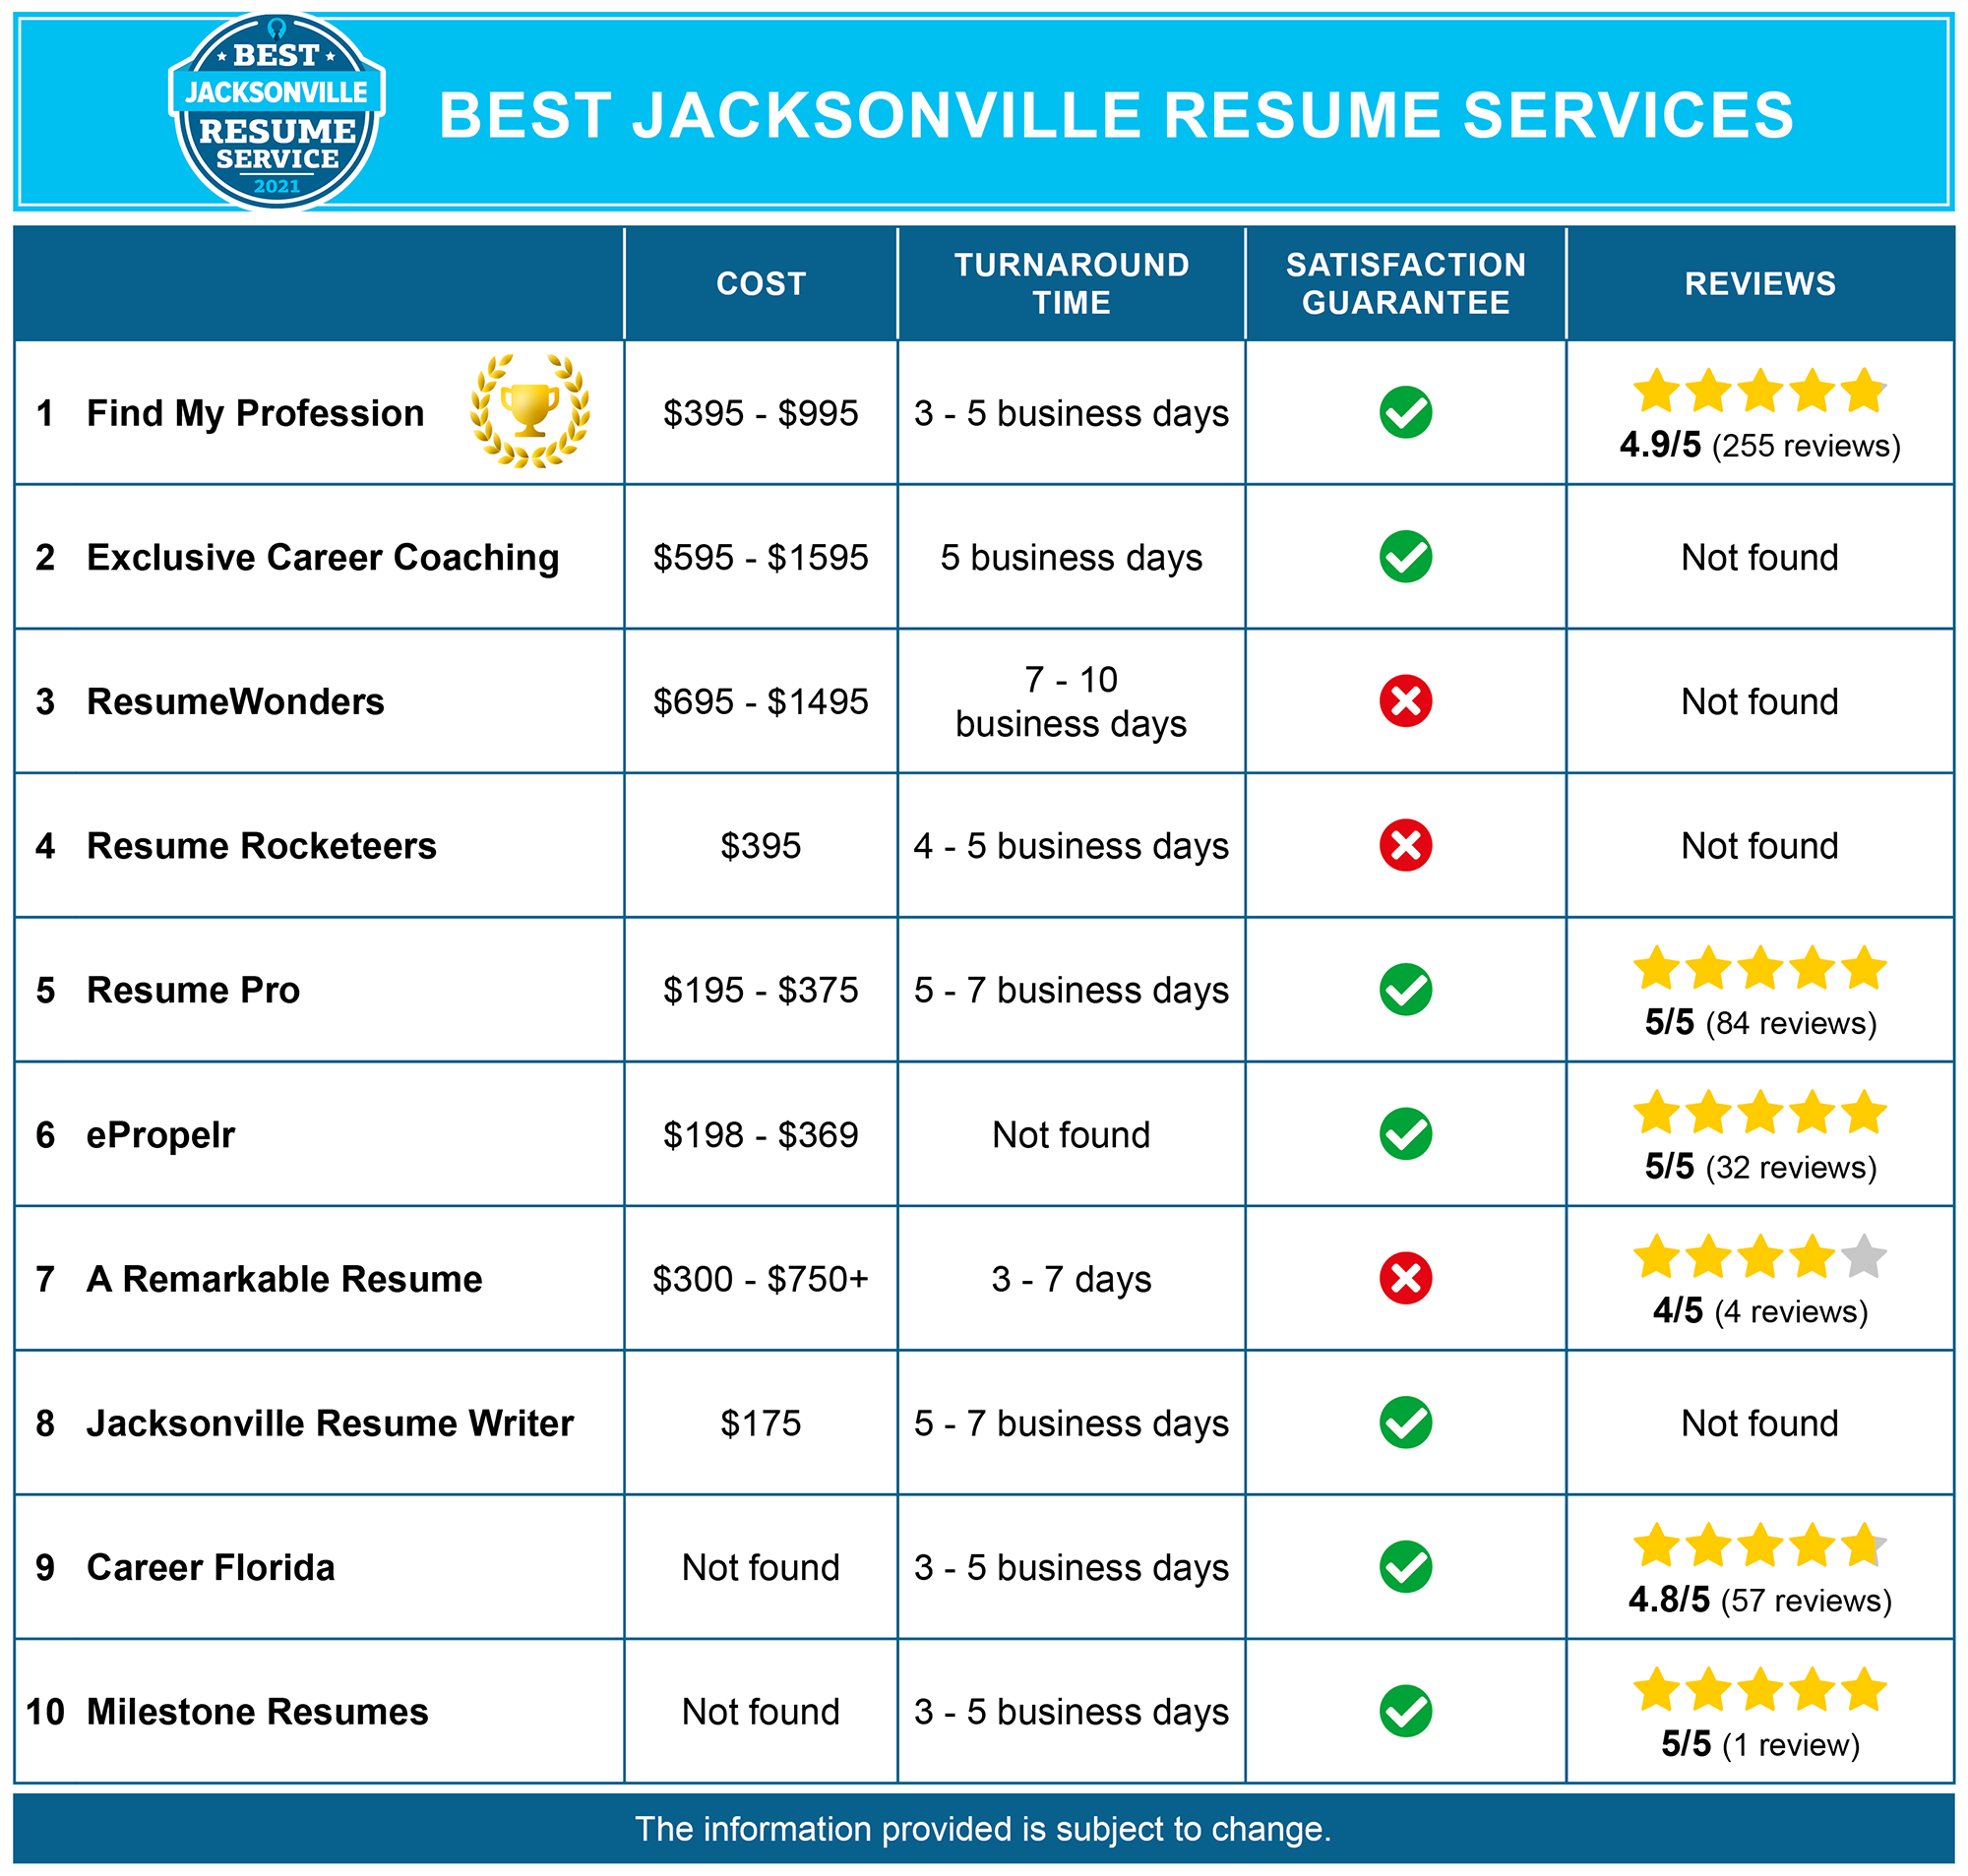 10 Best Resume Writing Services in Jacksonville, FL